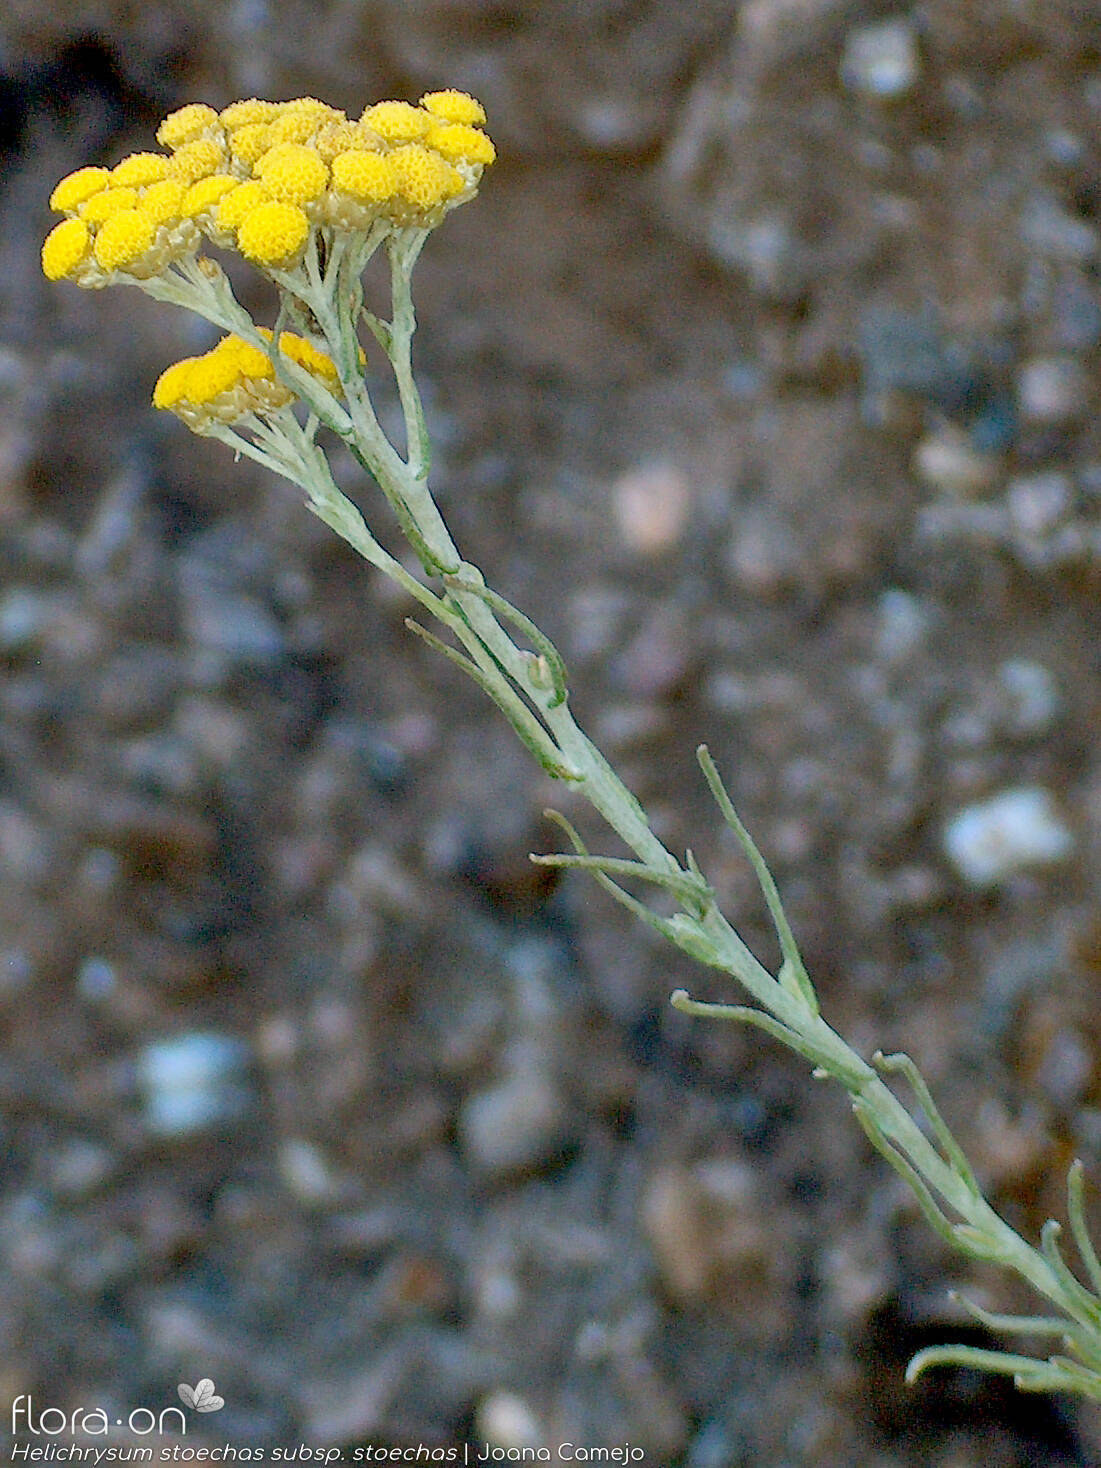 Helichrysum stoechas stoechas - Flor (geral) | Joana Camejo; CC BY-NC 4.0